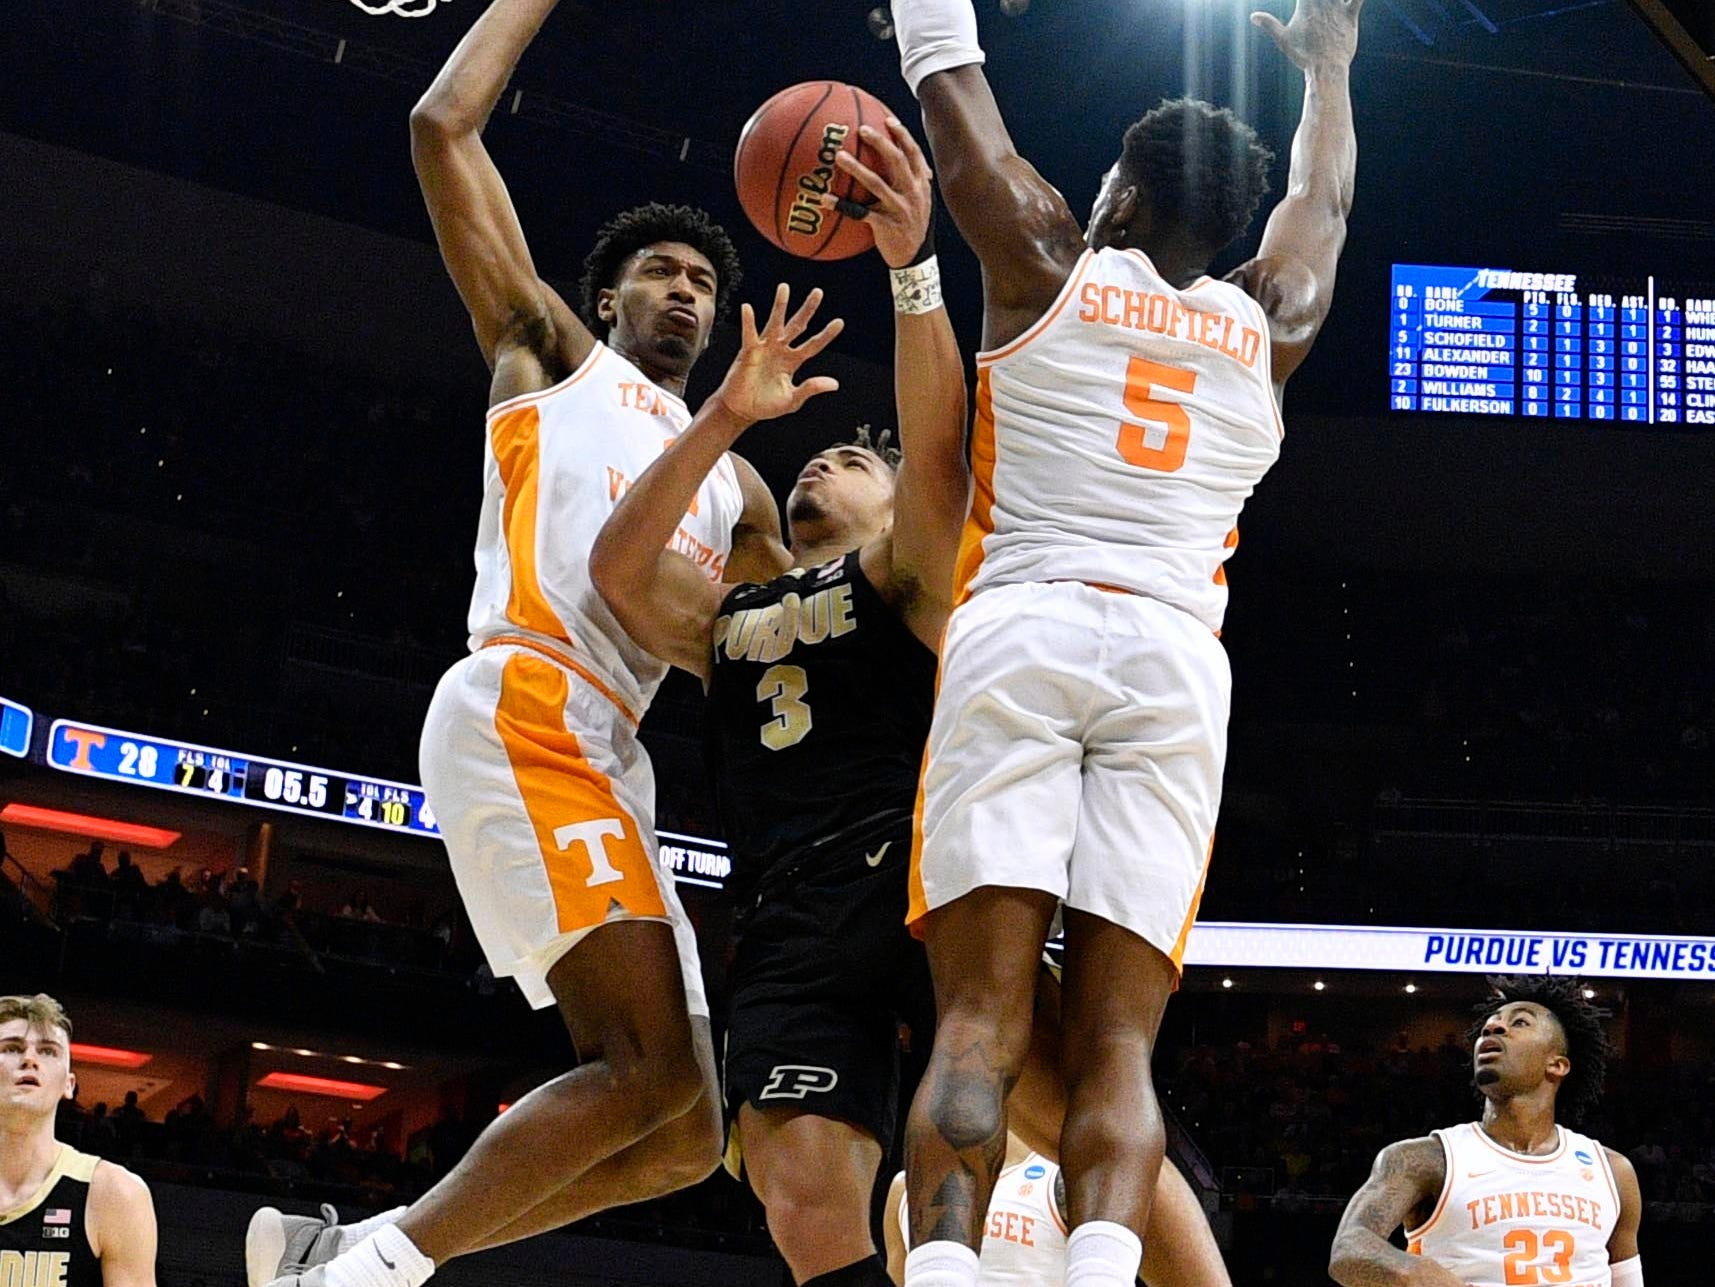 Mar 28, 2019; Louisville, KY, United States; Purdue Boilermakers guard Carsen Edwards (3) goes up for a shot as Tennessee Volunteers forward Kyle Alexander (11) and guard Admiral Schofield (5) defend during the first half in the semifinals of the south regional of the 2019 NCAA Tournament at KFC Yum Center. Mandatory Credit: Jamie Rhodes-USA TODAY Sports